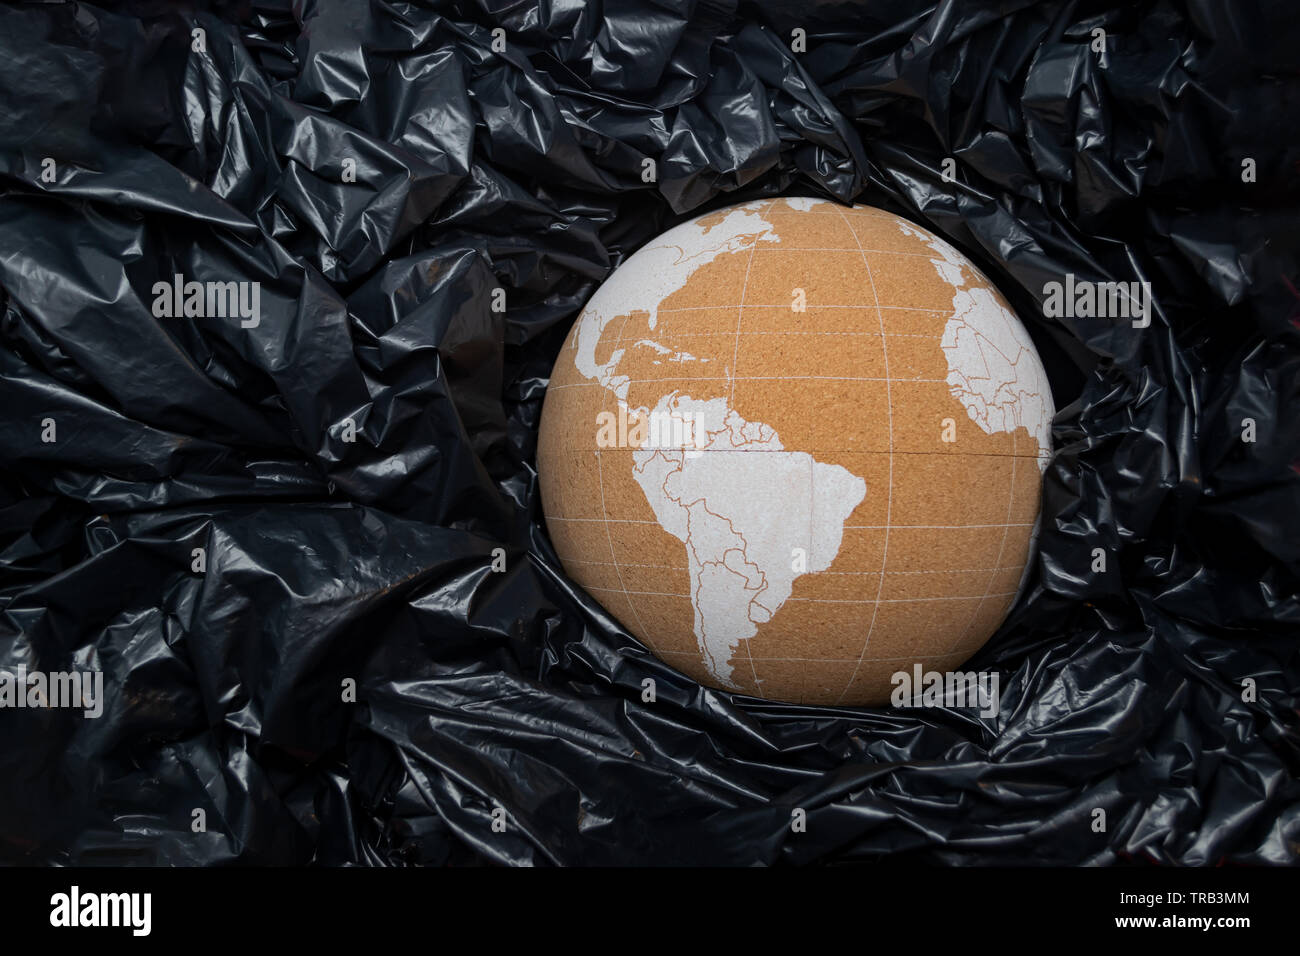 Cork globe representing planet Earth among black plastic bags, sinking. Ocean plastic pollution problem concept. - Stock Image